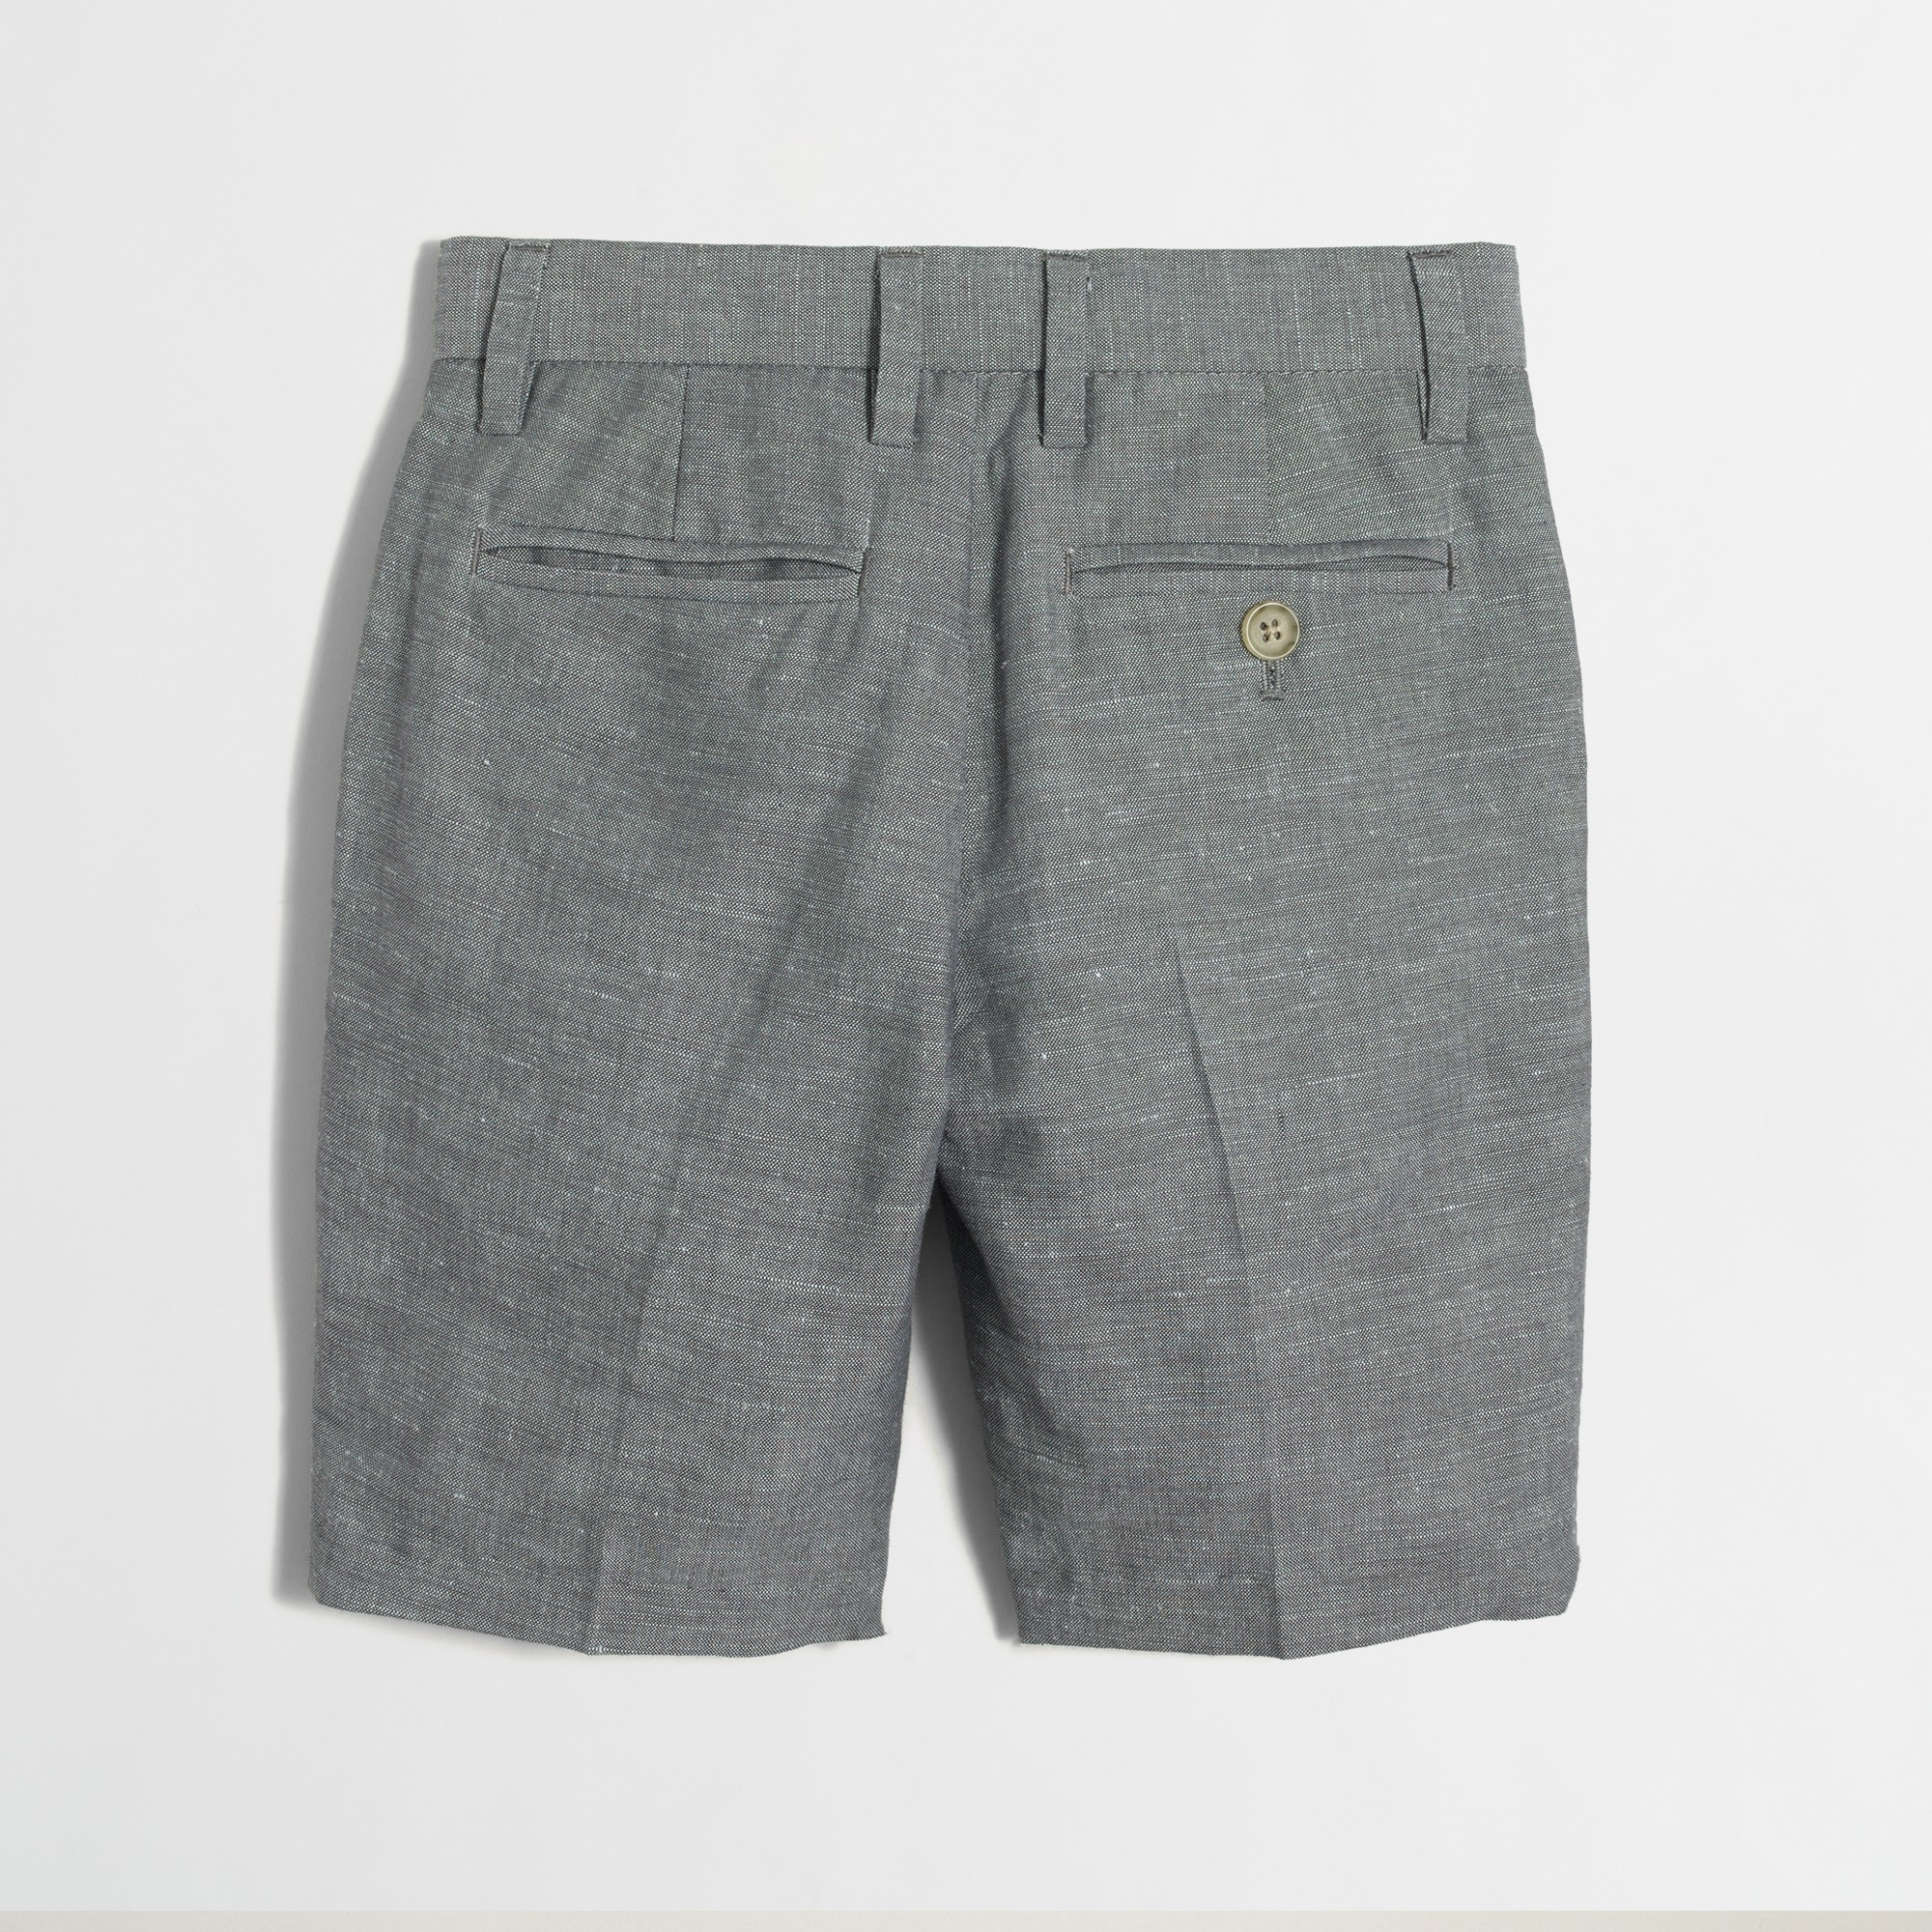 Image 2 for Boys' Thompson suit short in slub linen